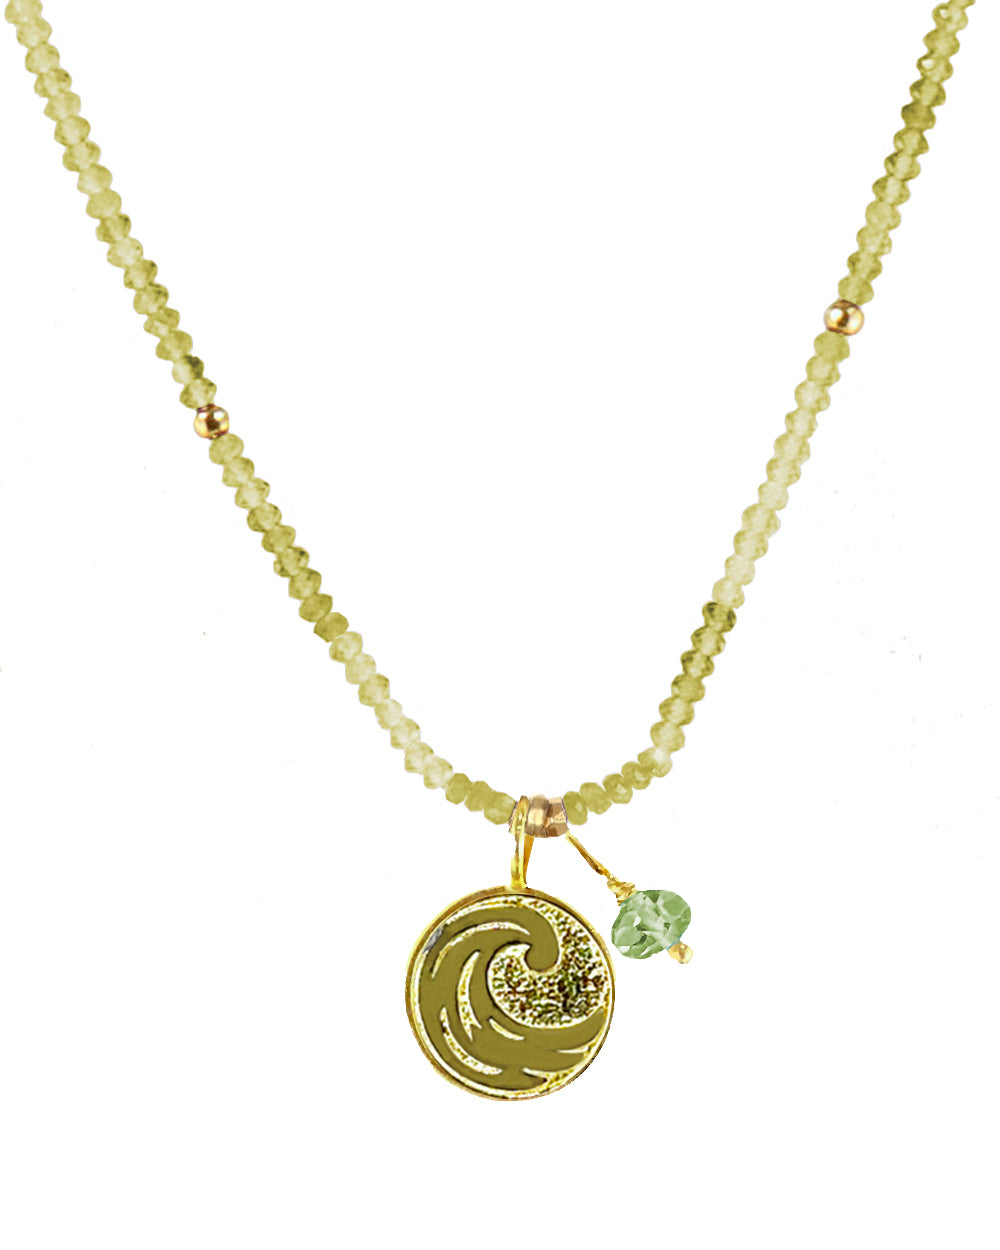 Water Elements Necklace with Green Fluorite in Gold Vermeil